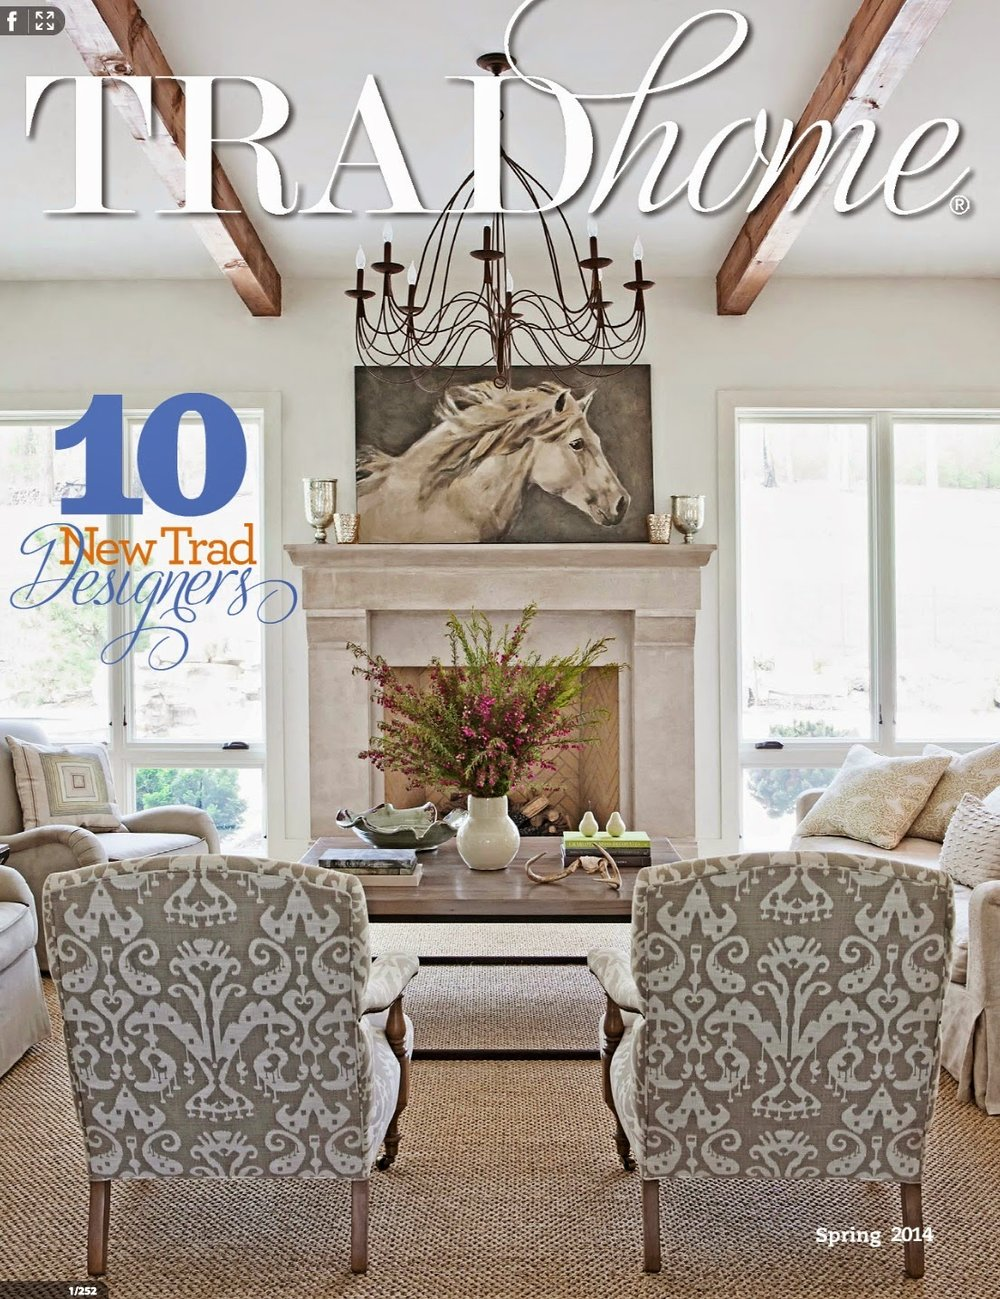 tradhome2014cover.jpg